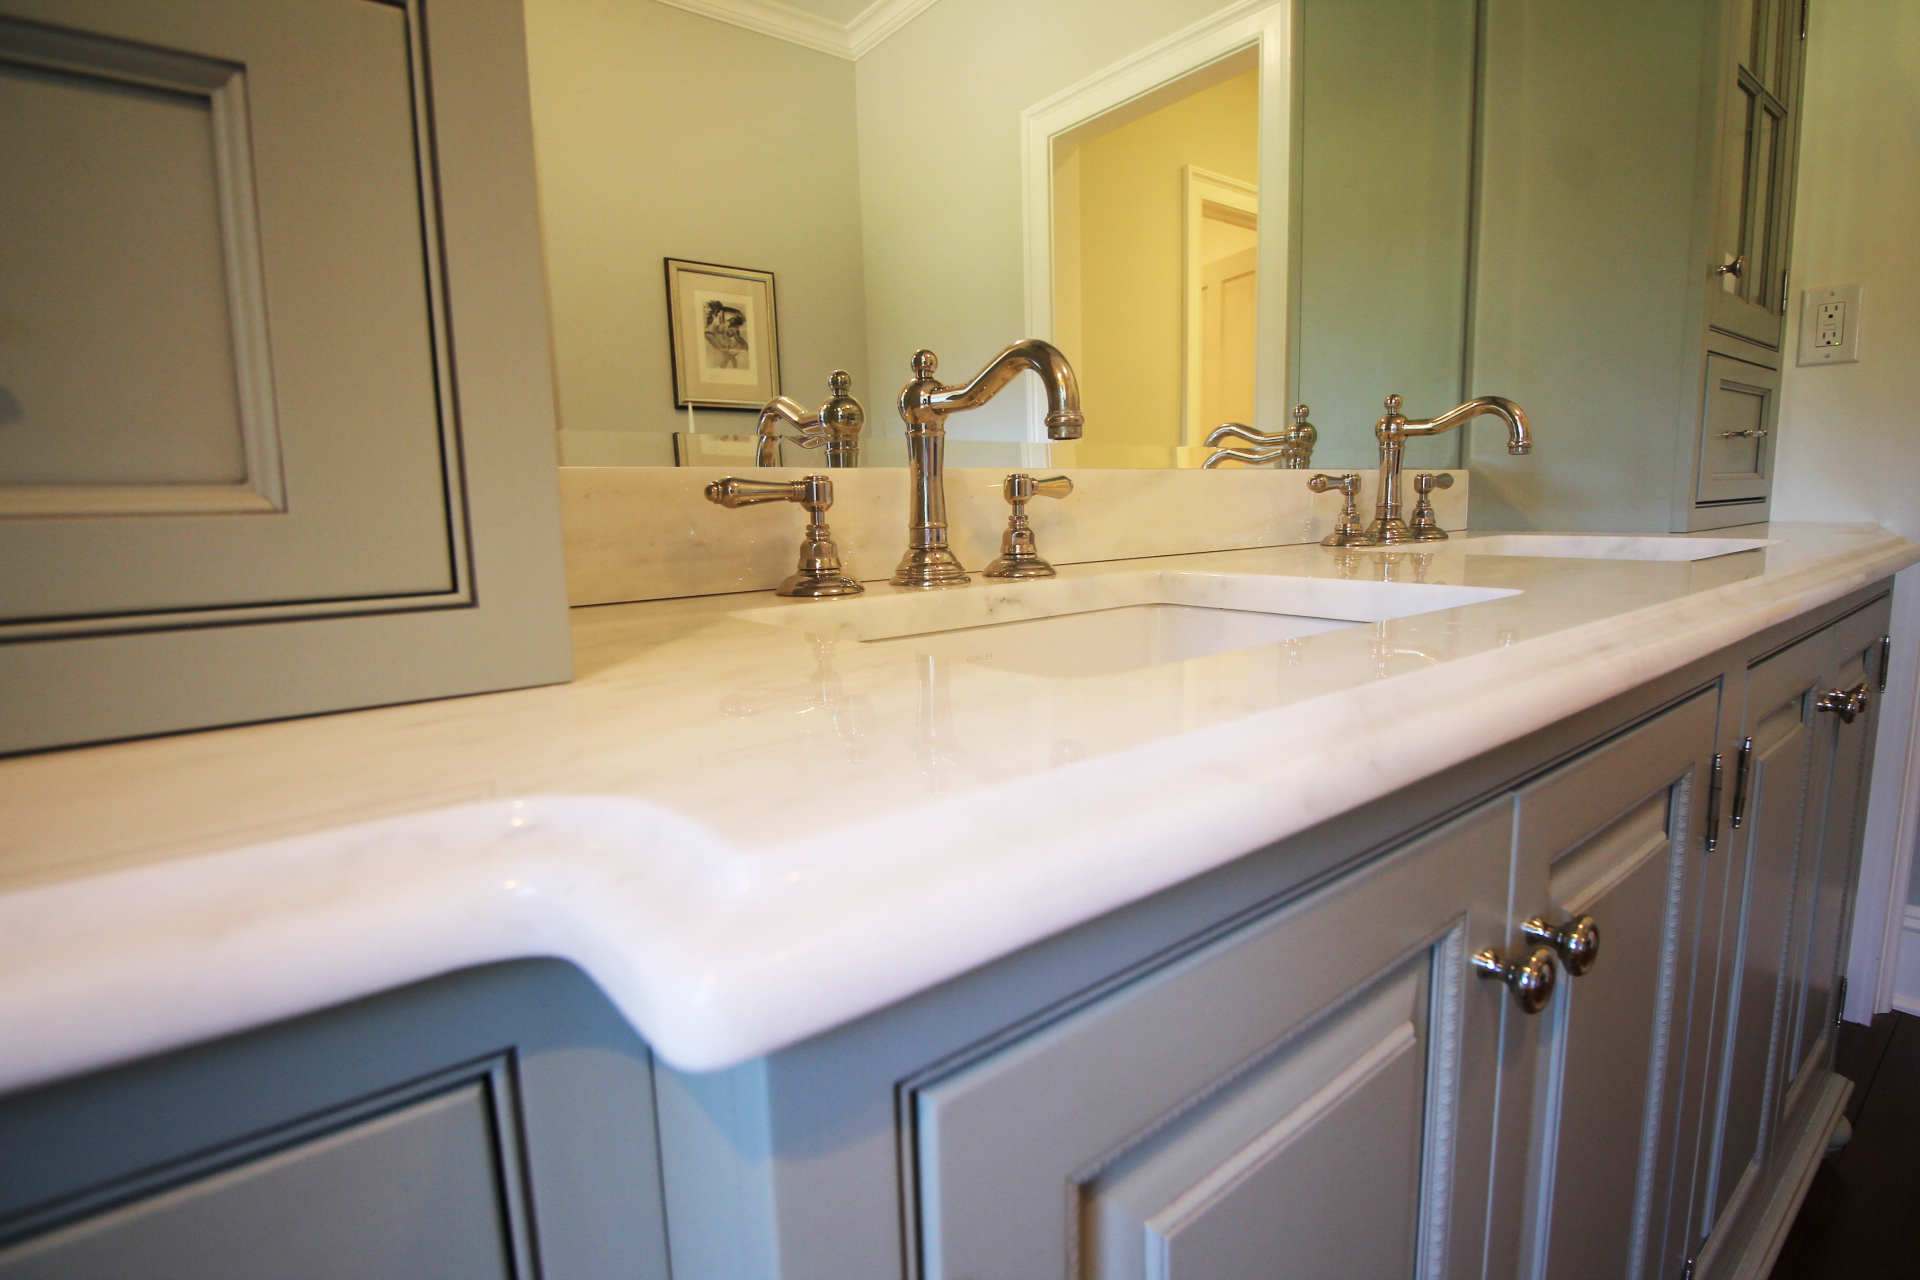 Vermont Danby marble, Rohl faucets